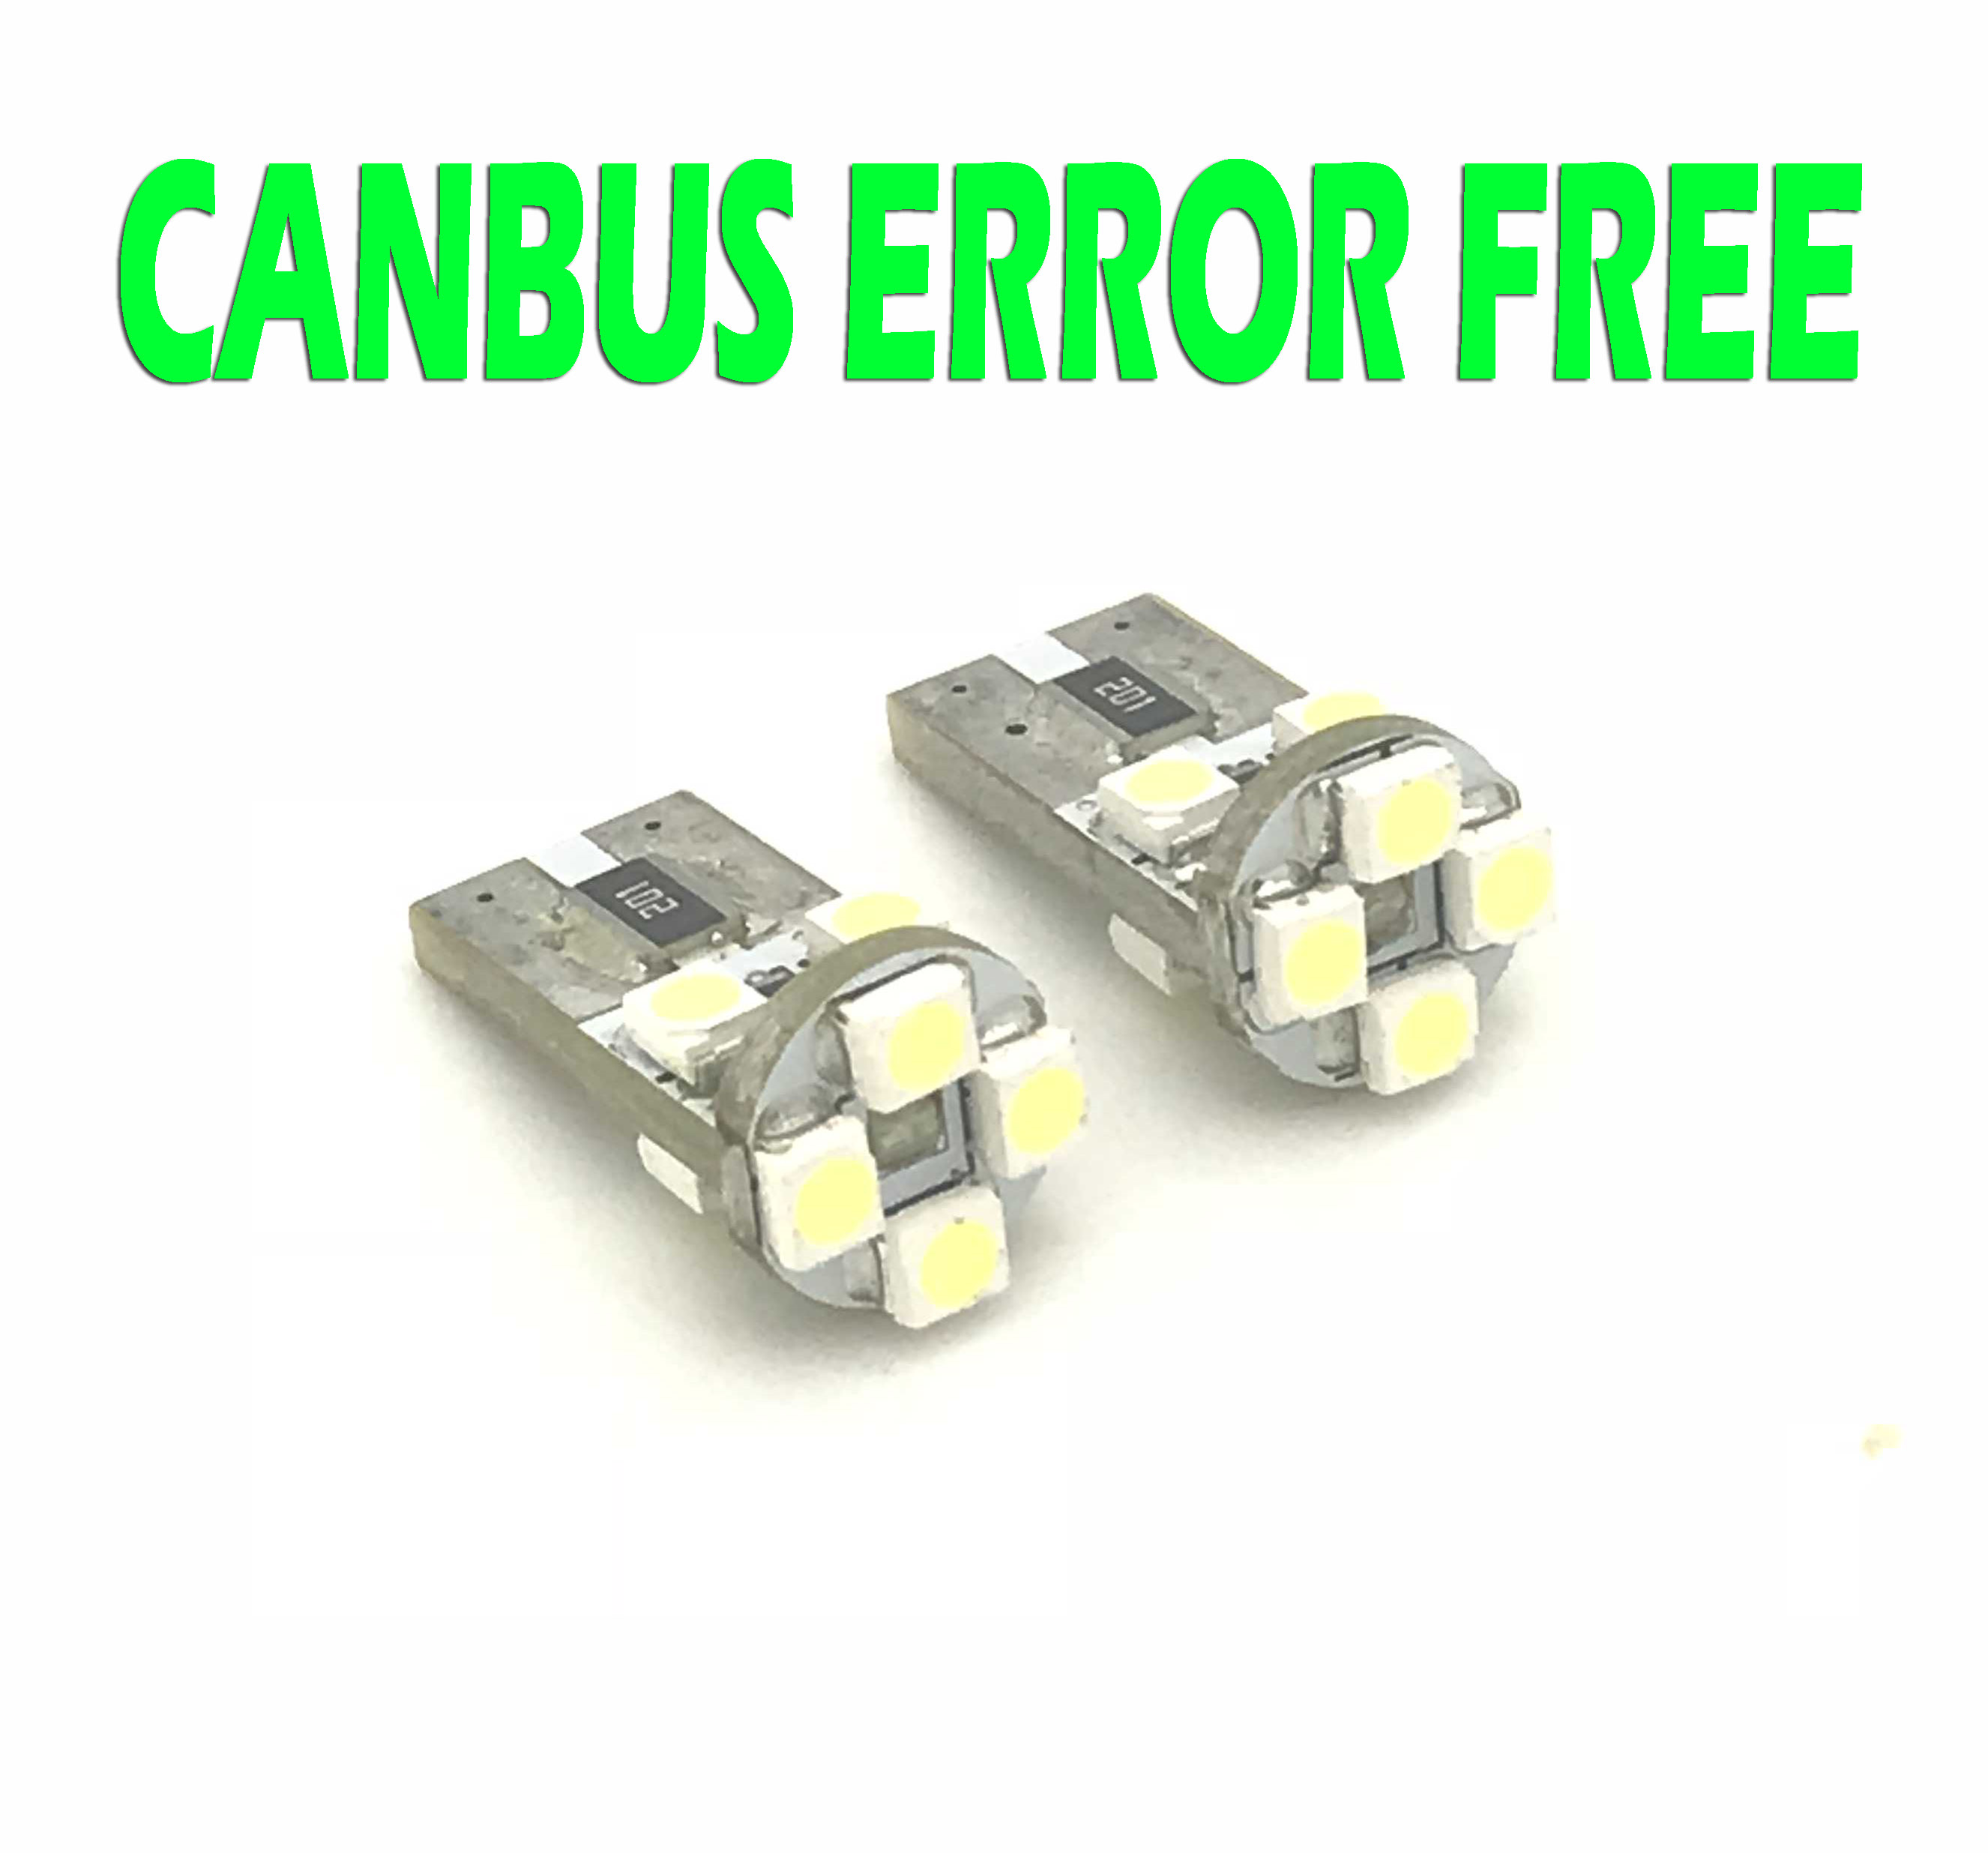 9W LED Canbus Error Free 501 Sidelight Parking Bulbs Lamp Xenon White For Ford